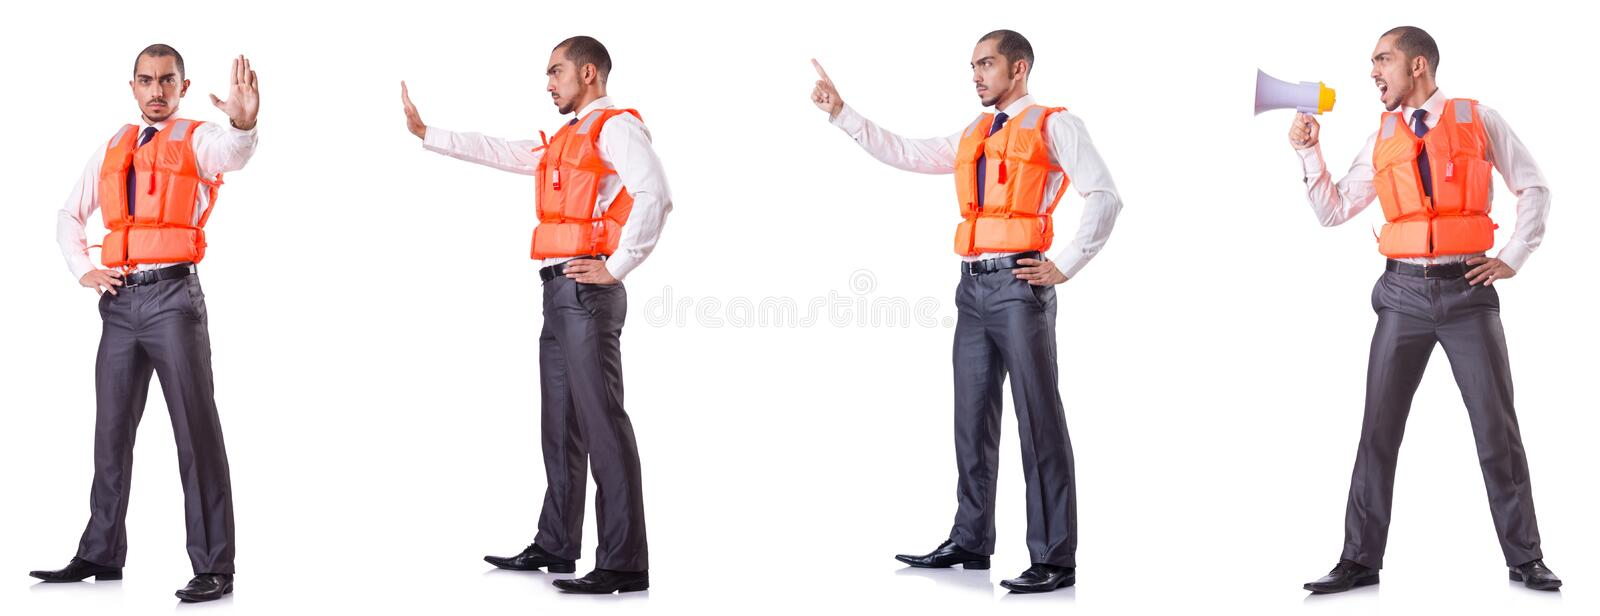 The businessman with rescue safety vest on white. Businessman with rescue safety vest on white royalty free stock image